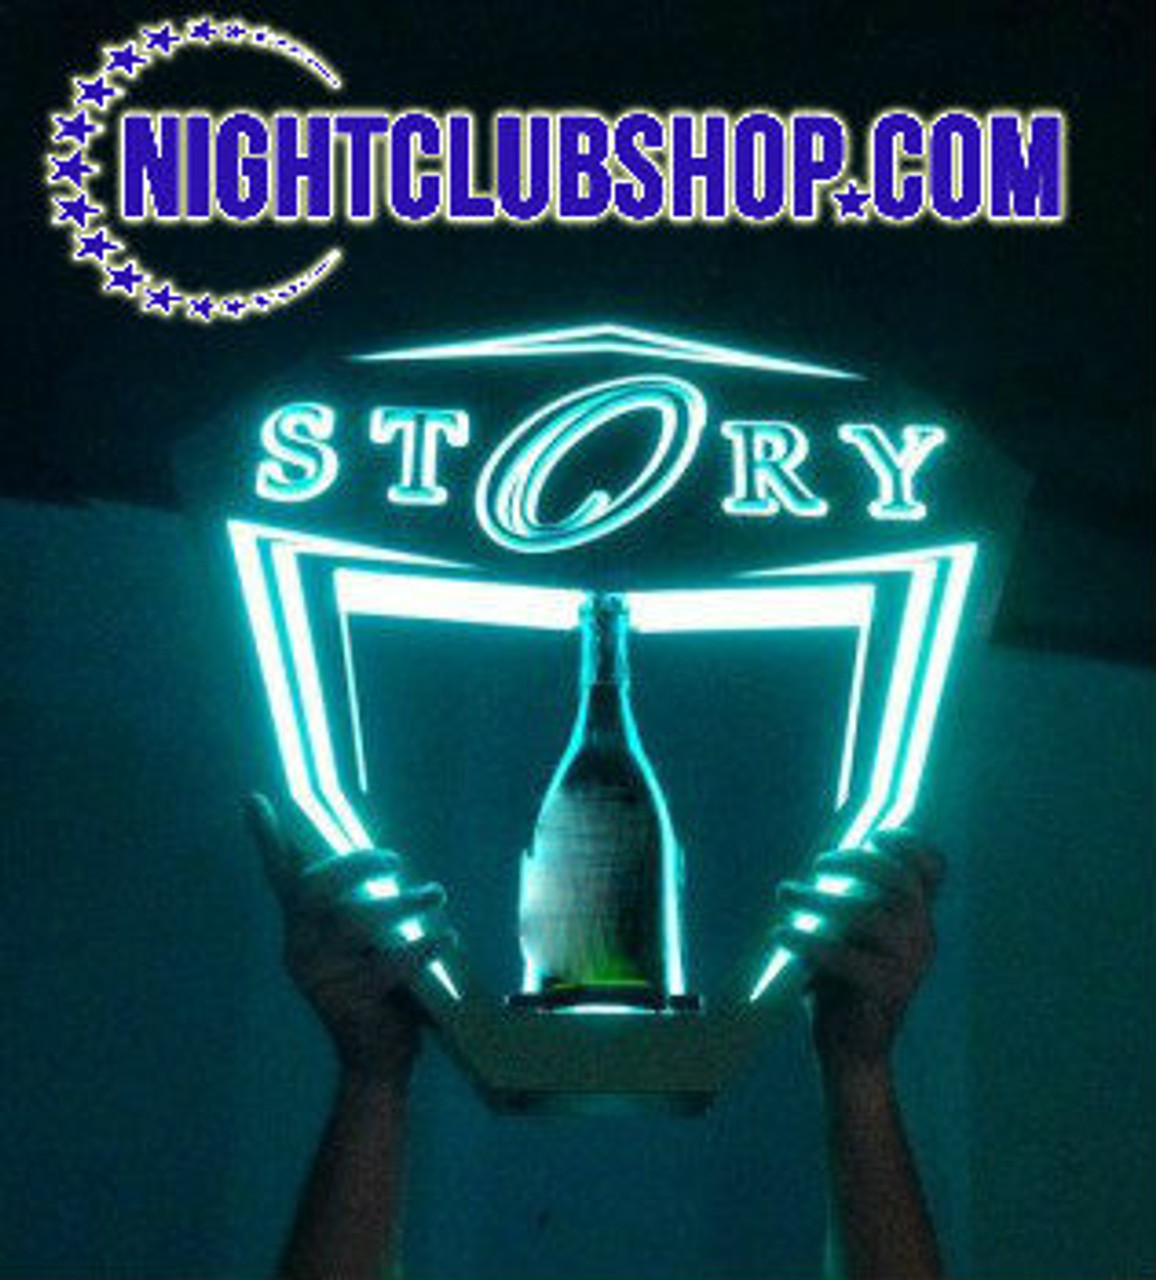 Monthly, Service,Plan, Nightclubshop, Bottle, Service, Delivery, Presenter, Presentation, Caddy, LED,VIP,Tray,Nightclub,custom,carrier,holder,club,Story,Miami